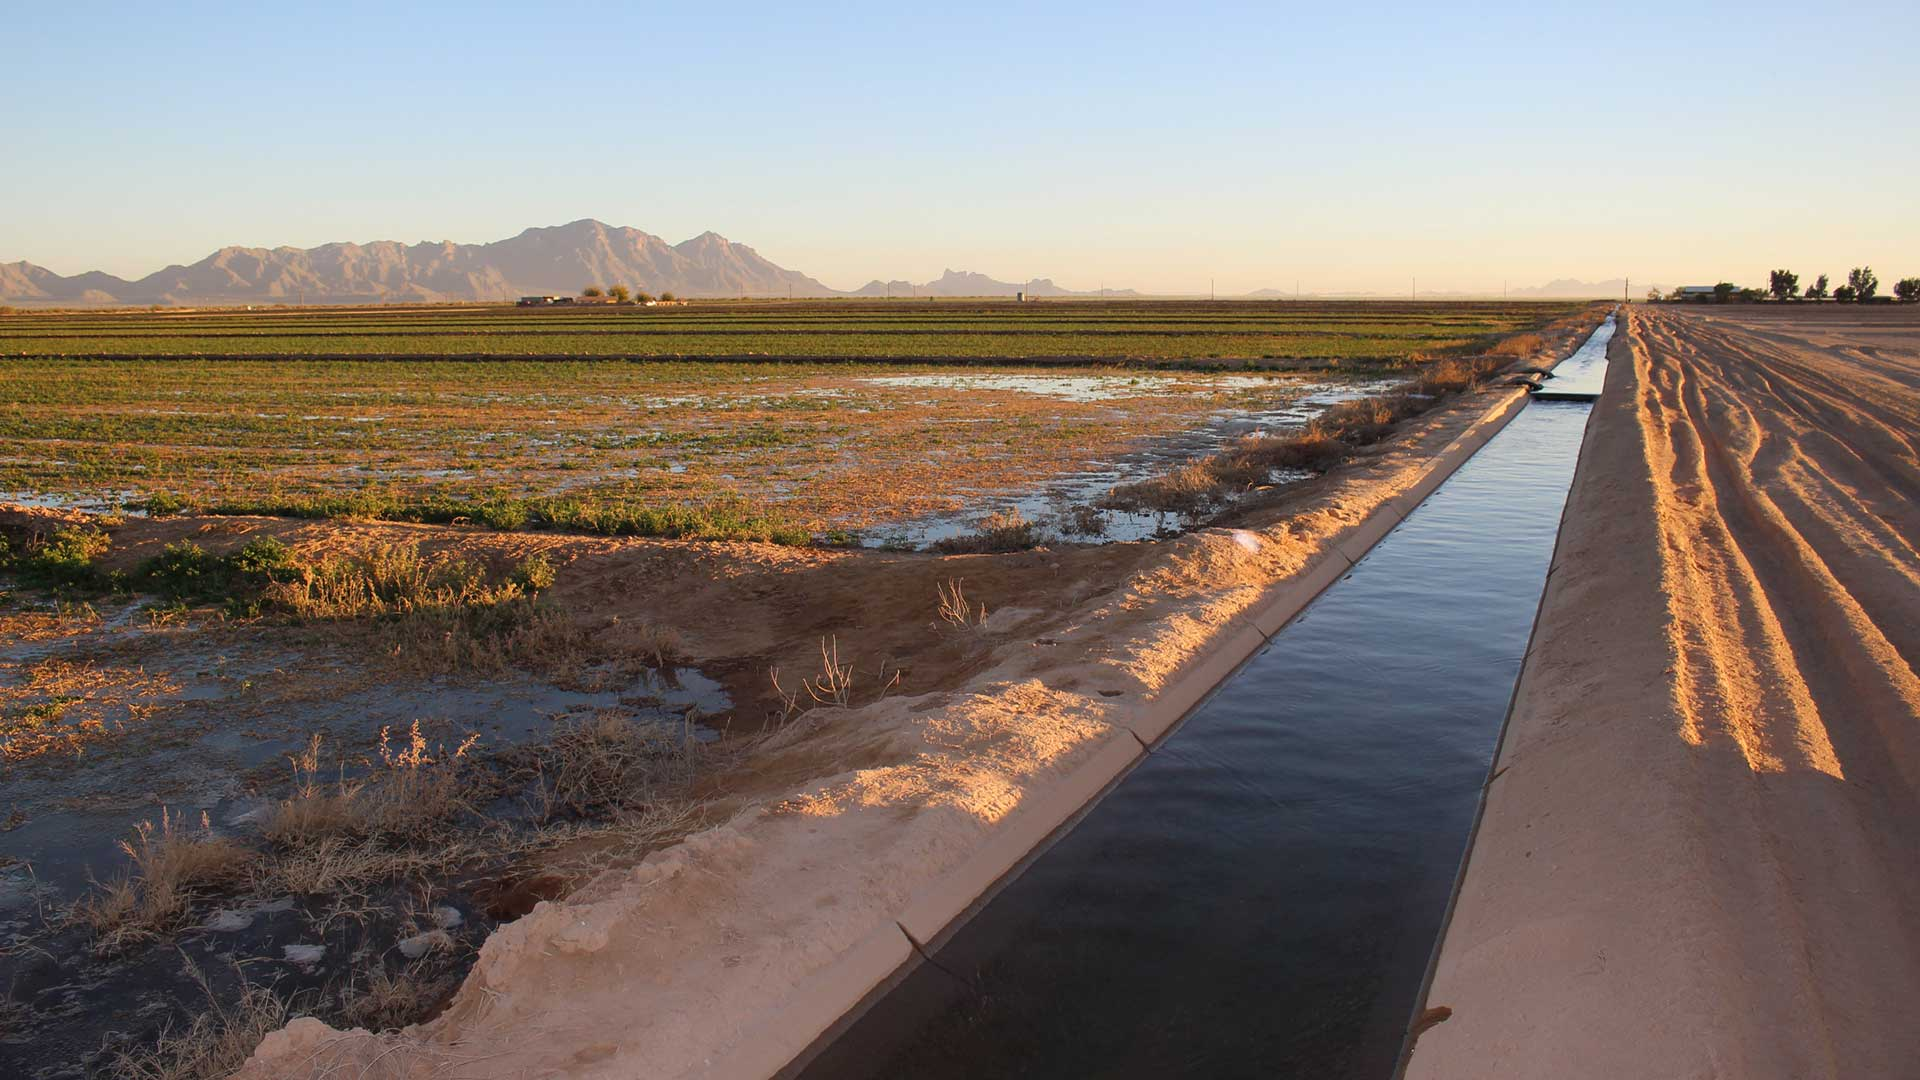 Water from the Colorado River flows through an irrigation canal at an alfalfa farm near Eloy, Arizona.